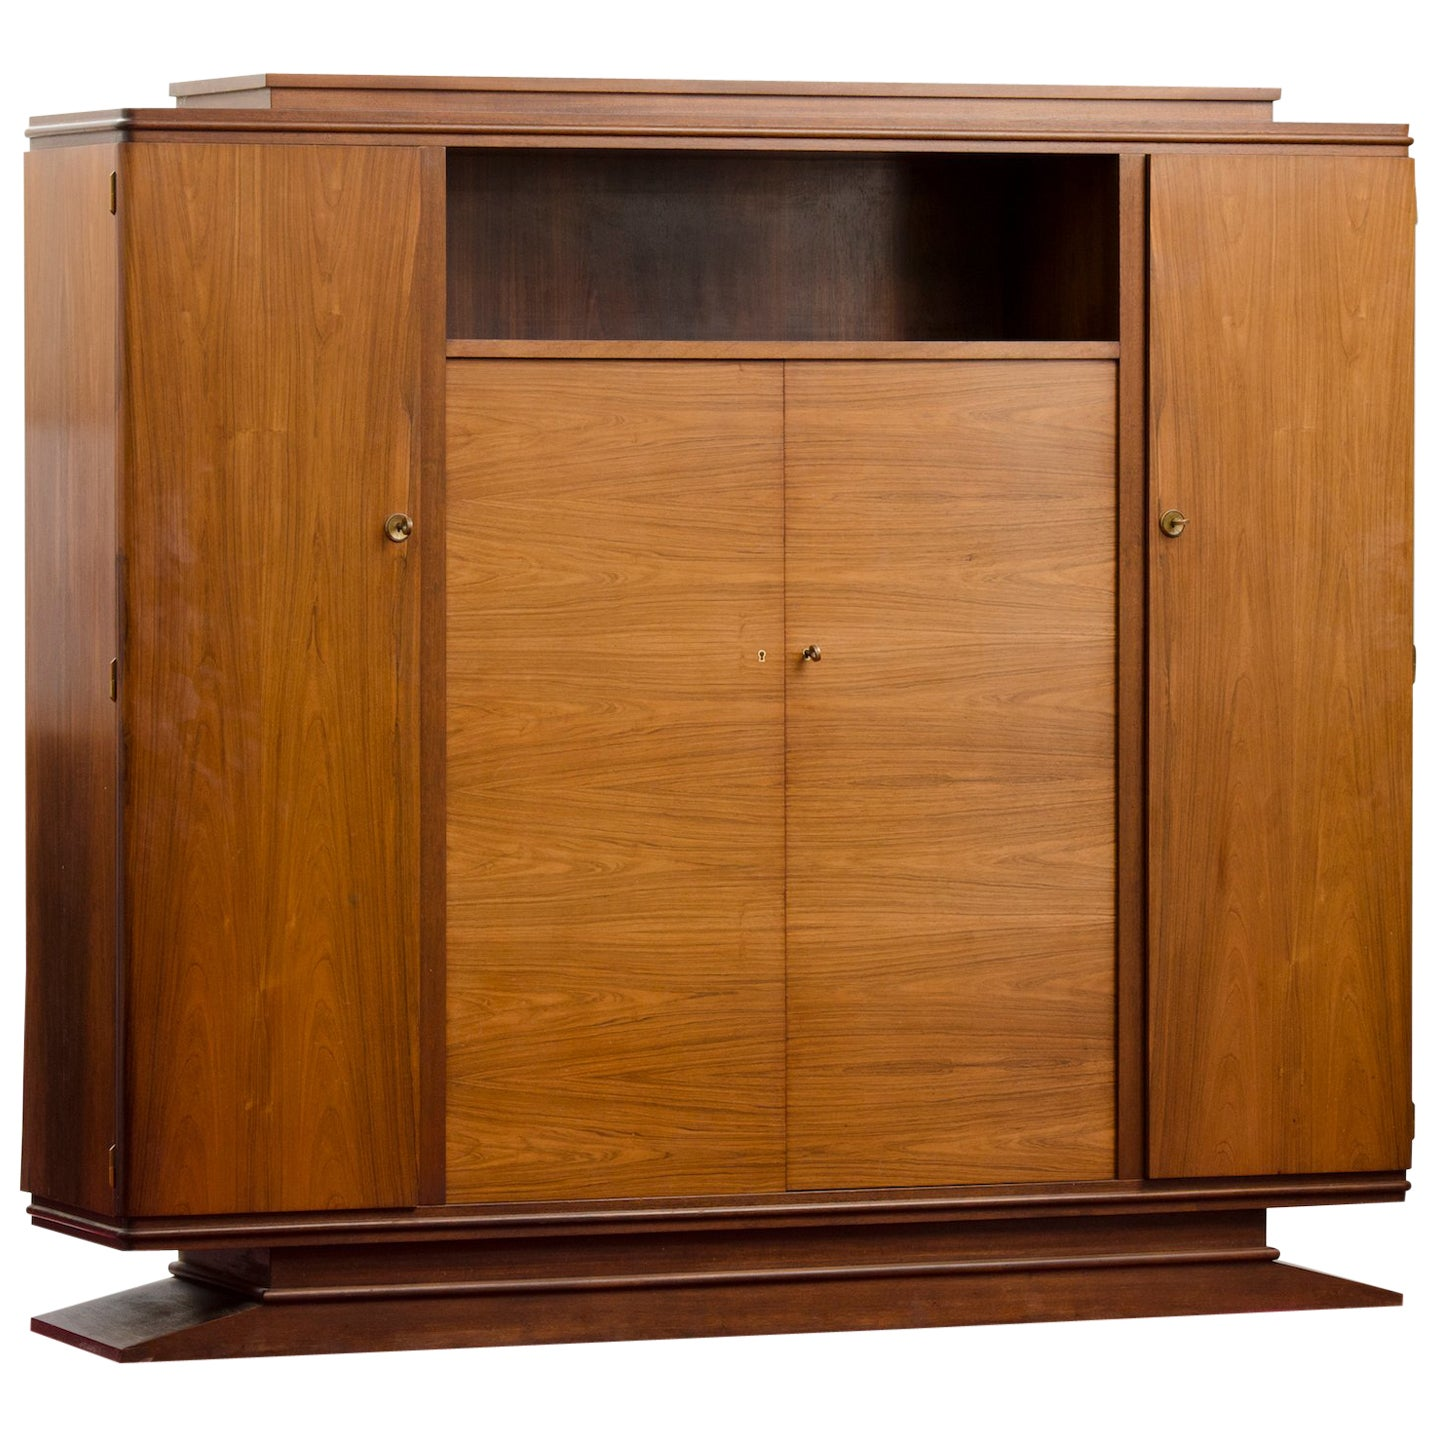 French Art Deco Cabinet or Bookcase